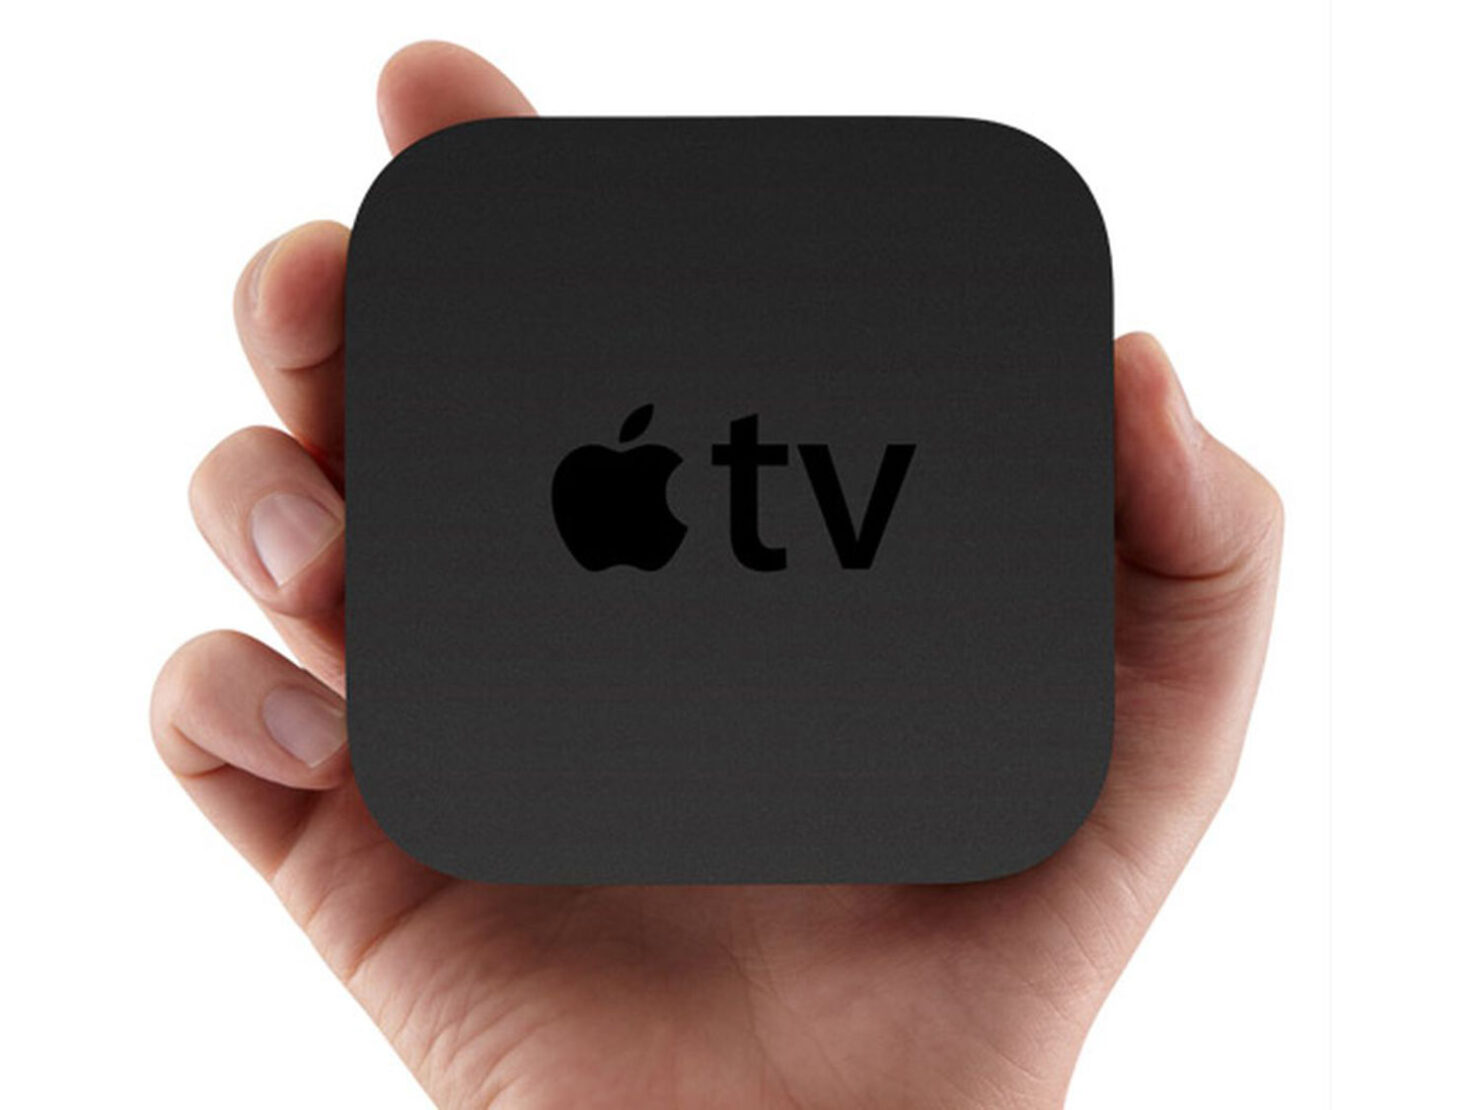 Upcoming Apple TV 6 Could Deliver 120Hz Refresh Rate Support, According to iOS 14.5 Beta Code Leak